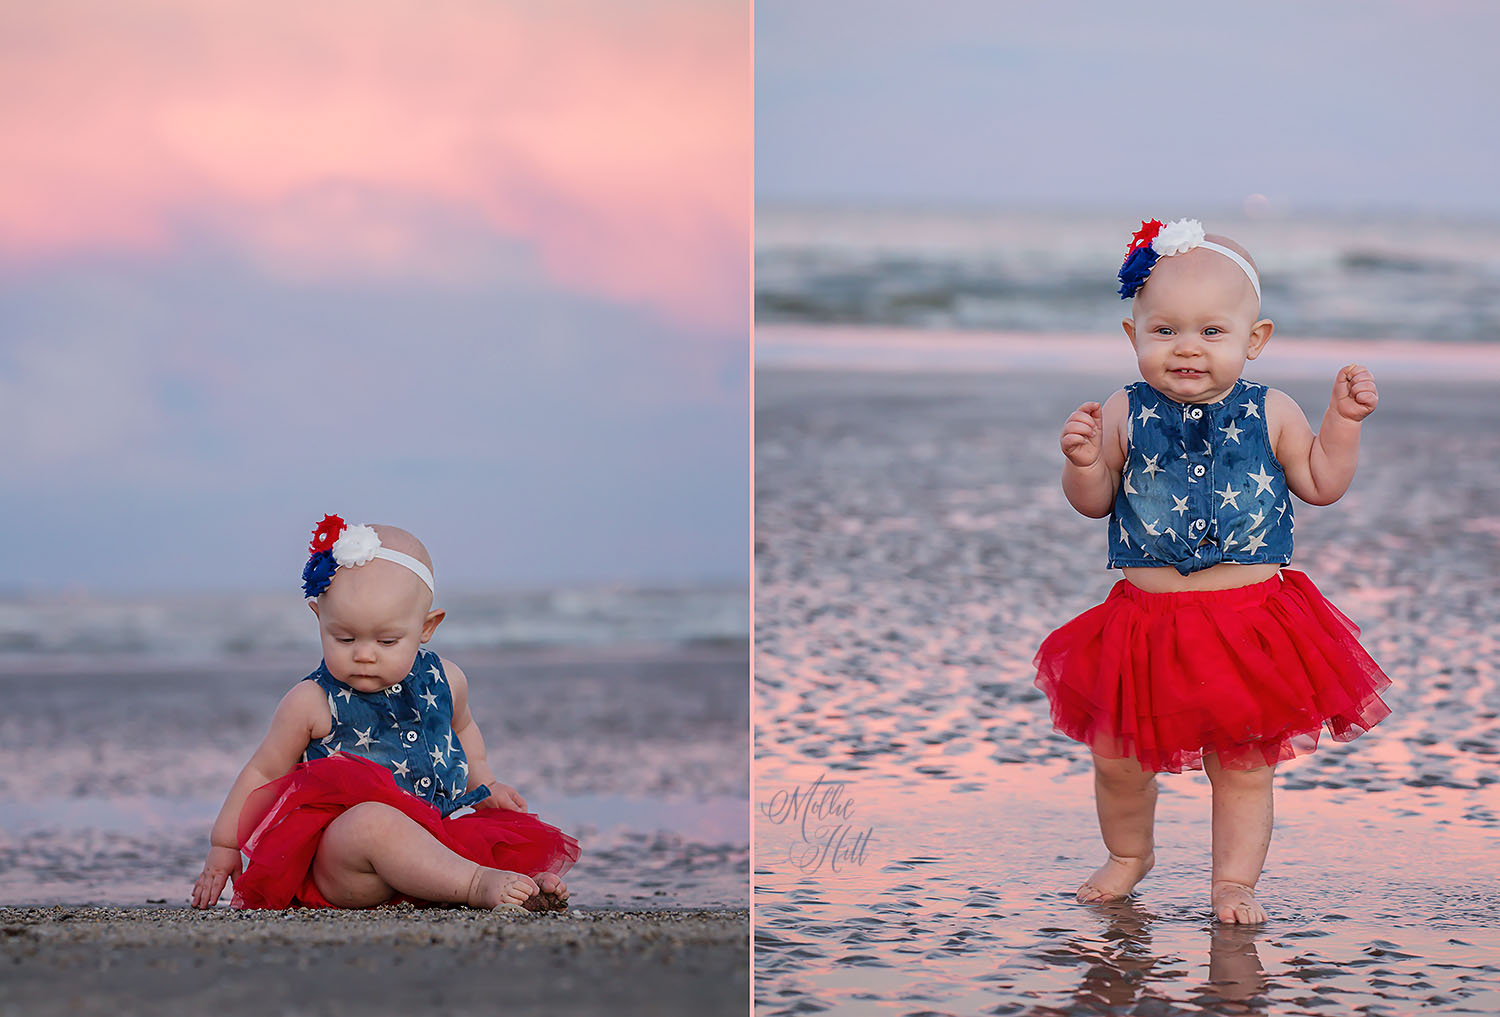 Collage of baby walking on the beach at sunset with beautiful sky reflected in the water